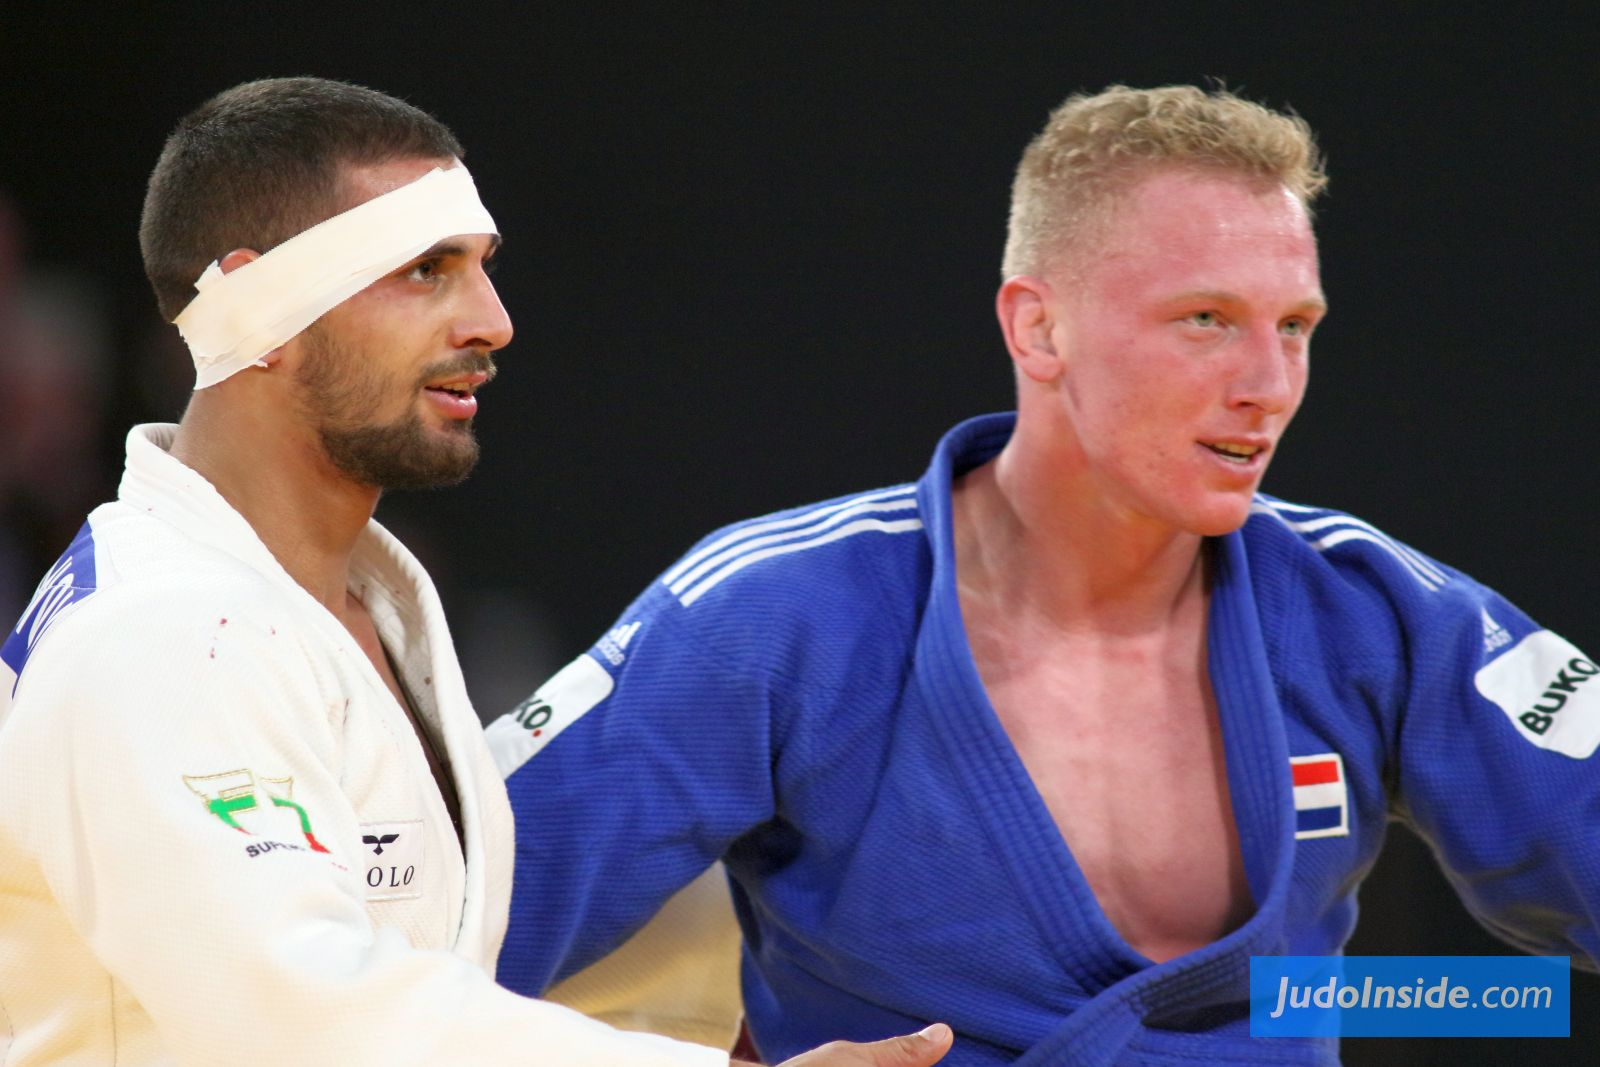 20181117_hve_gp_thehague_finals_241a3514_ivaylo_ivanov